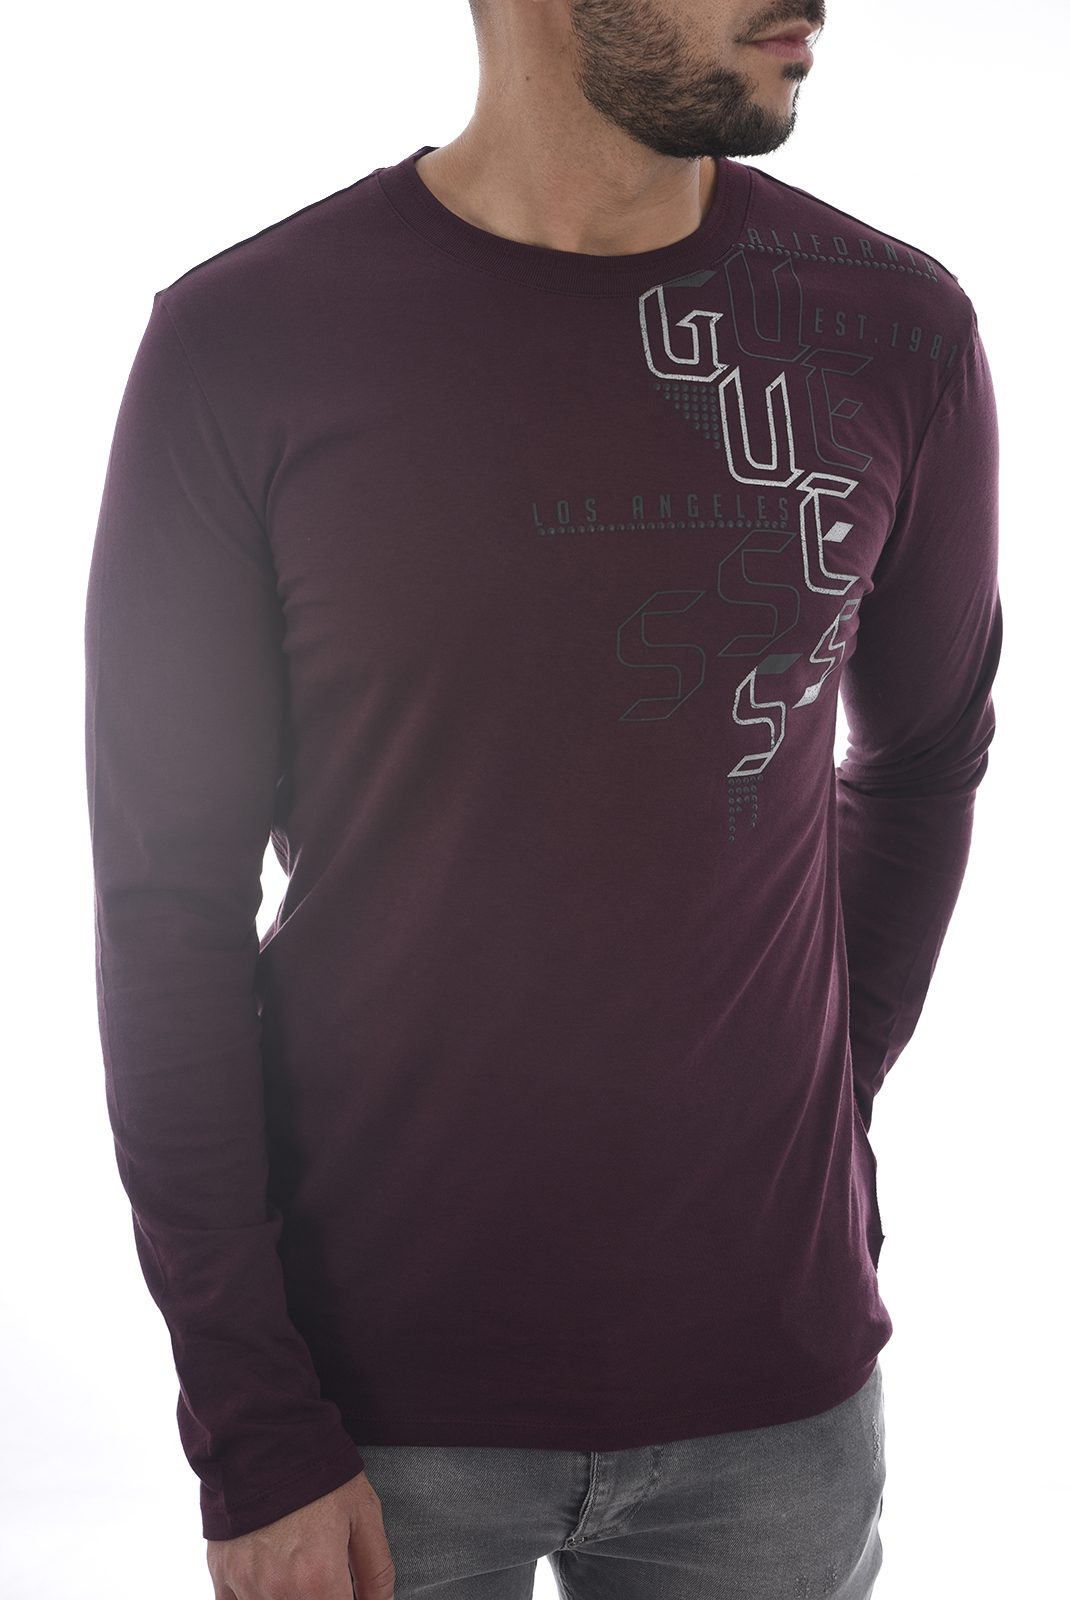 Tee-shirts  Guess jeans M84I19 I3Z00 REGAL PLUM